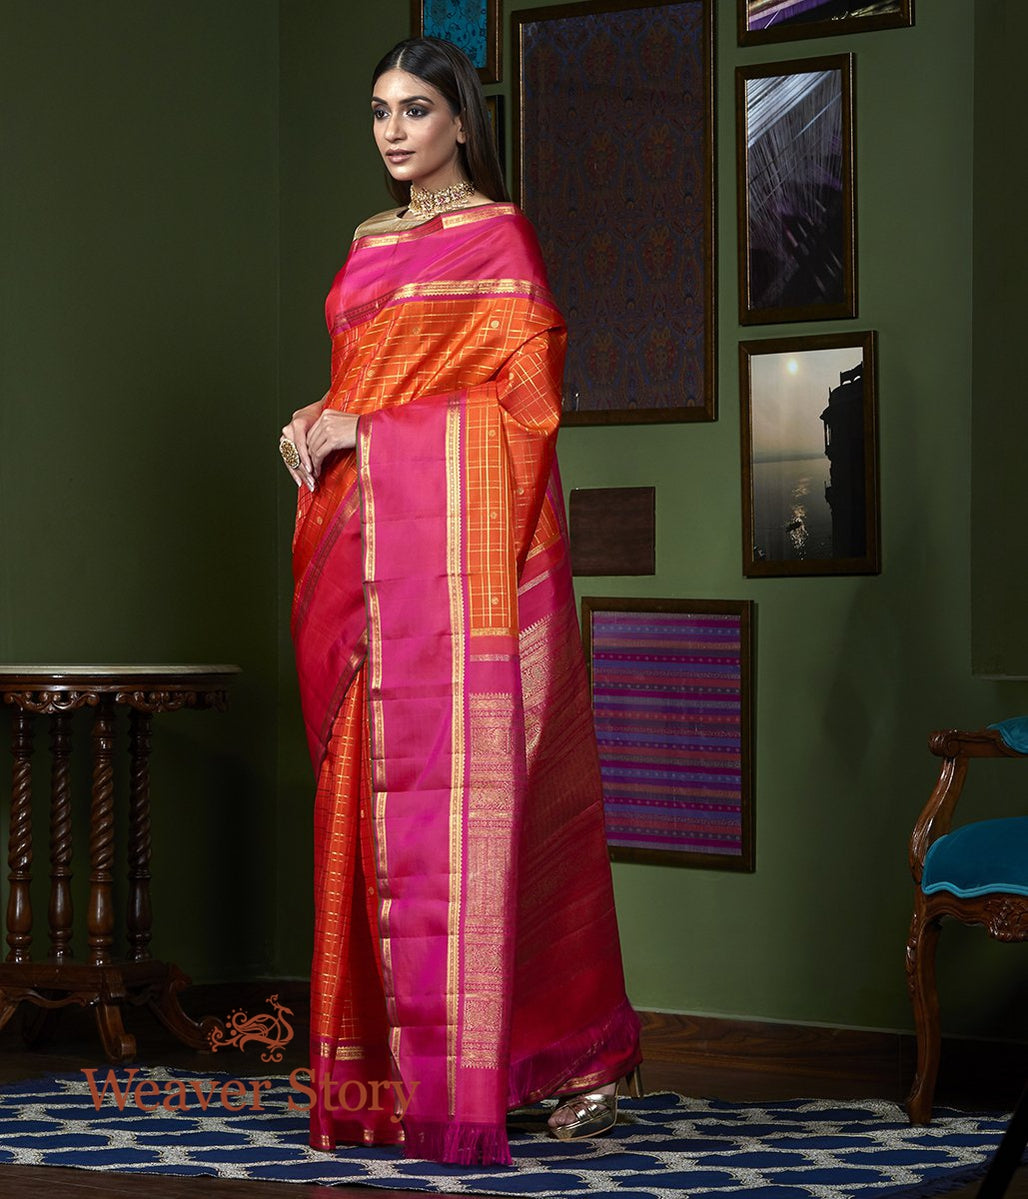 Handwoven Orange Zari Checks Kanjivaram Saree